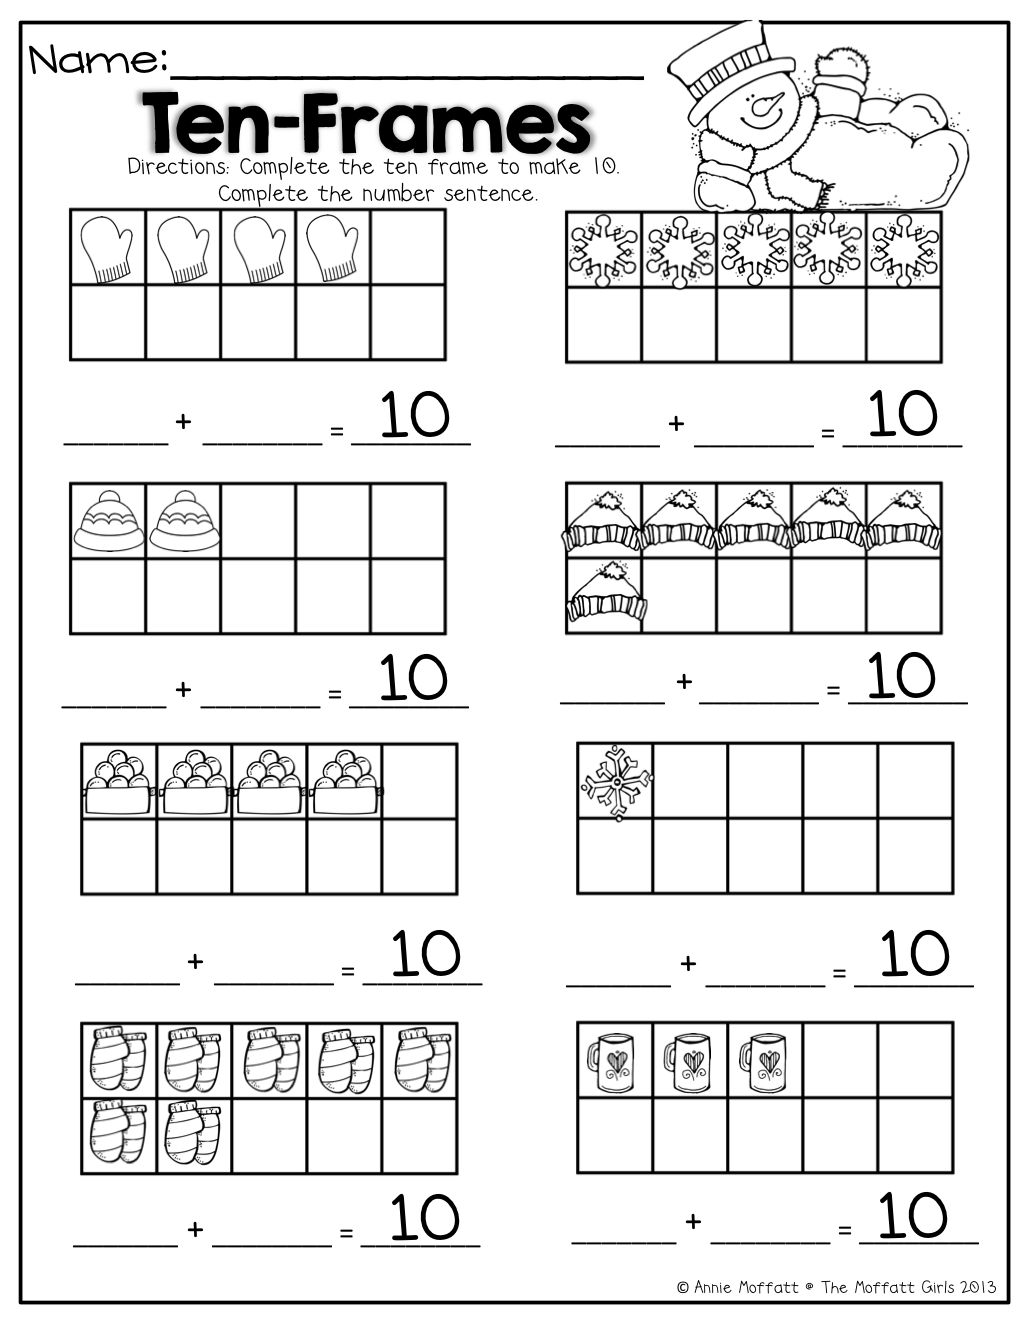 Pin By Annie Moffatt On Teaching Time Kindergarten Math 1st Grade Math Homeschool Math